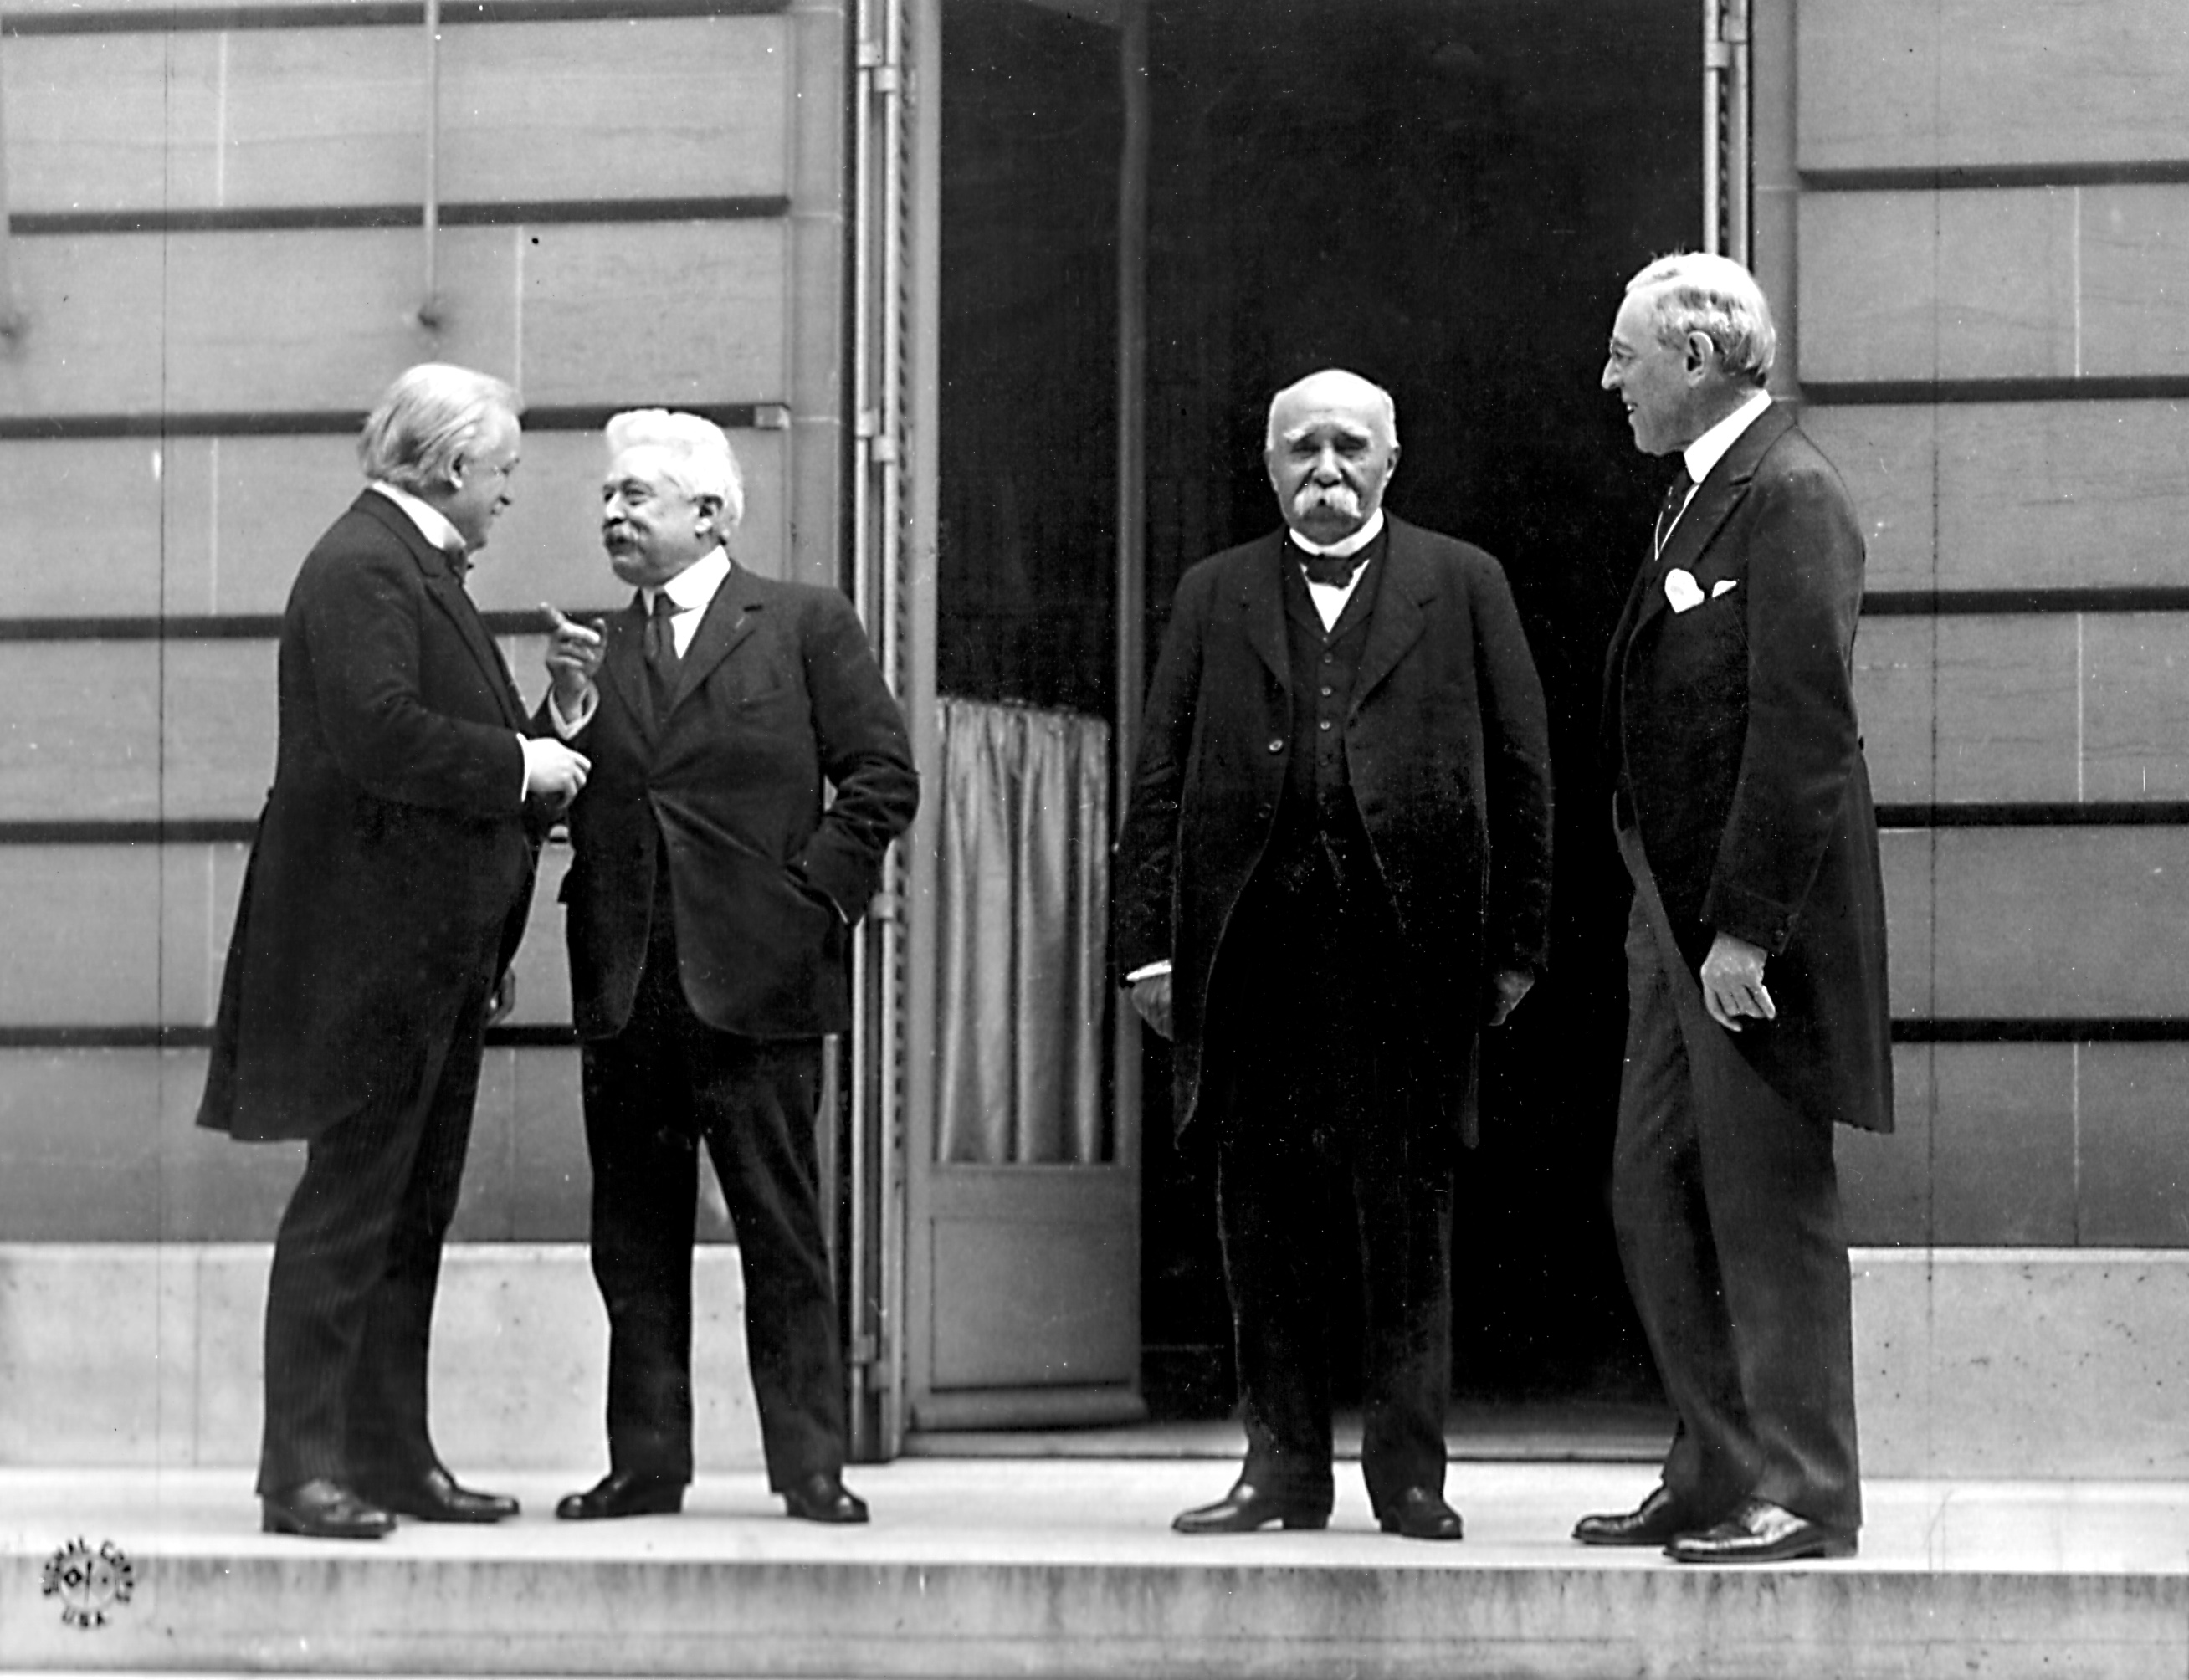 paris peace conference thesis The old gringo research essay food research paper thesis coming of age essay thesis creation of new nations data-description=paris peace conference 1919.